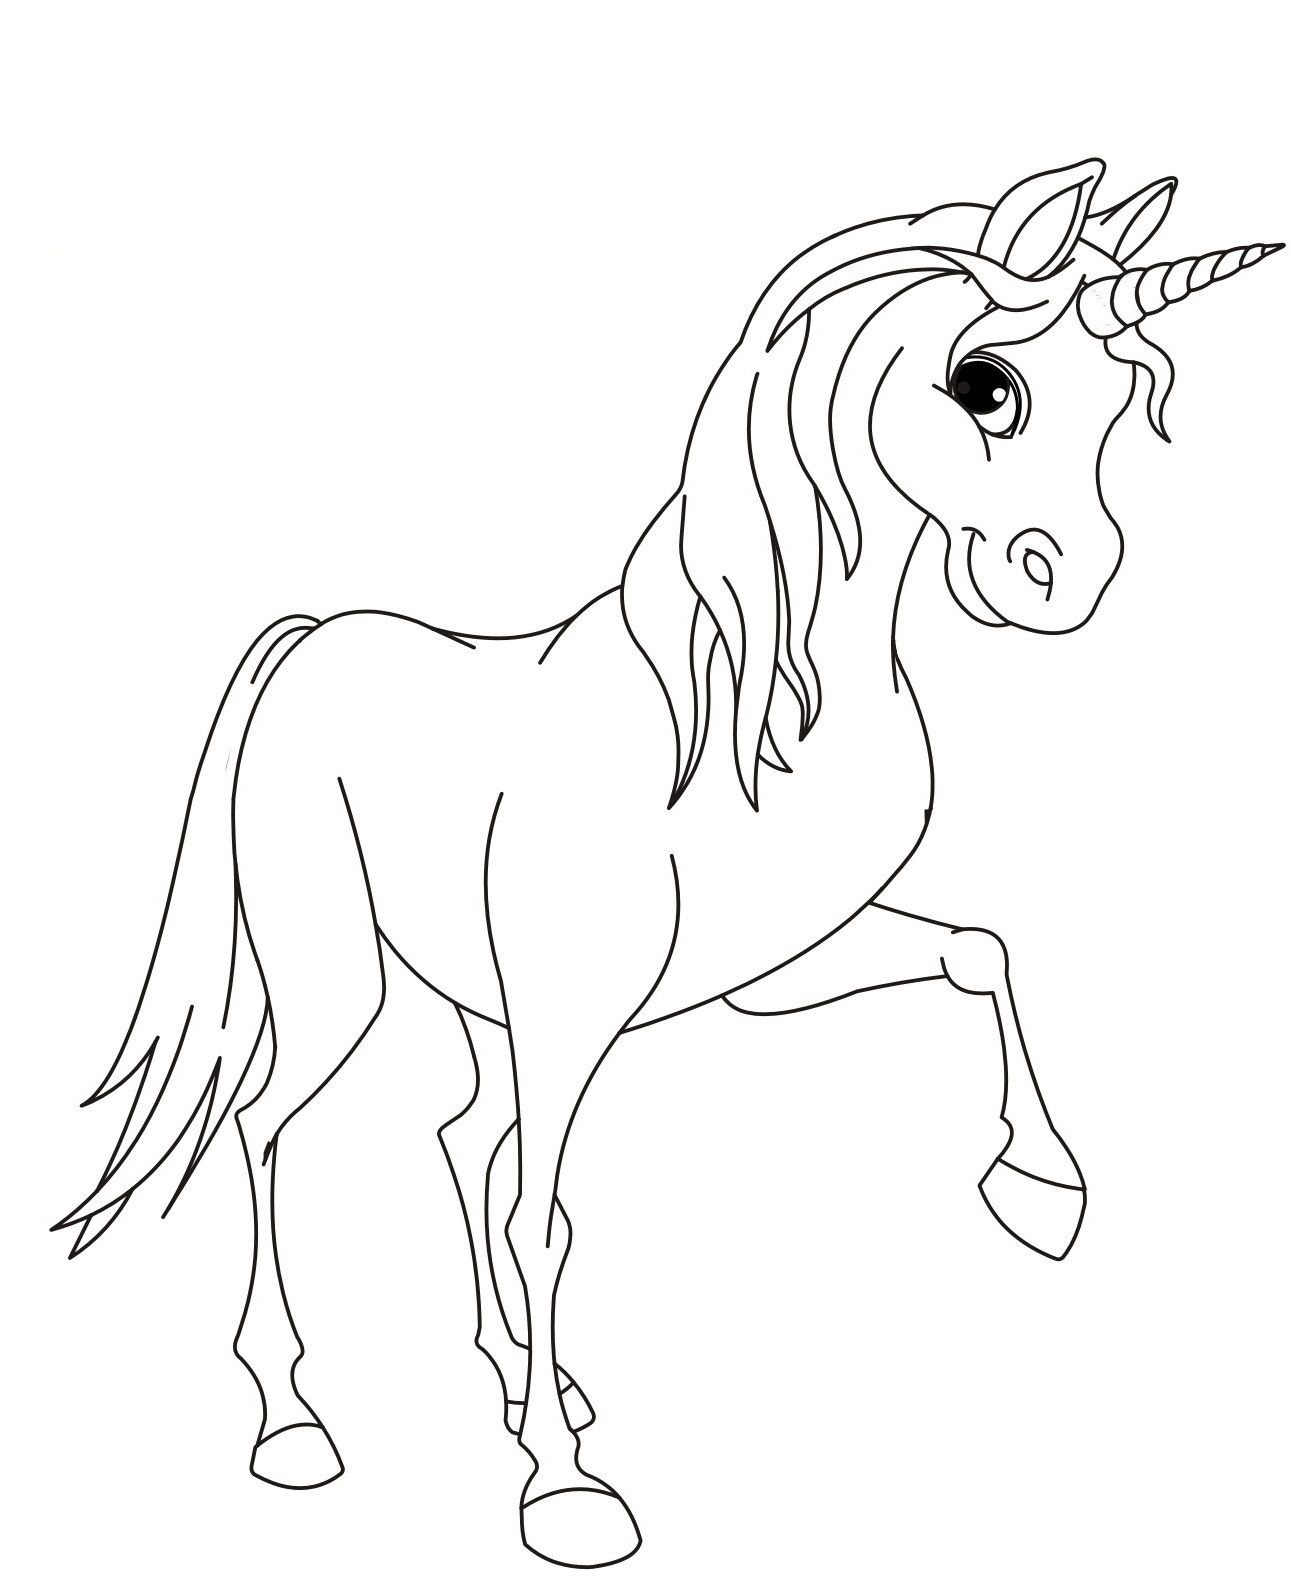 Malvorlagen Einhorn Kostenlos 05 Kinder Unicorn Coloring Pages